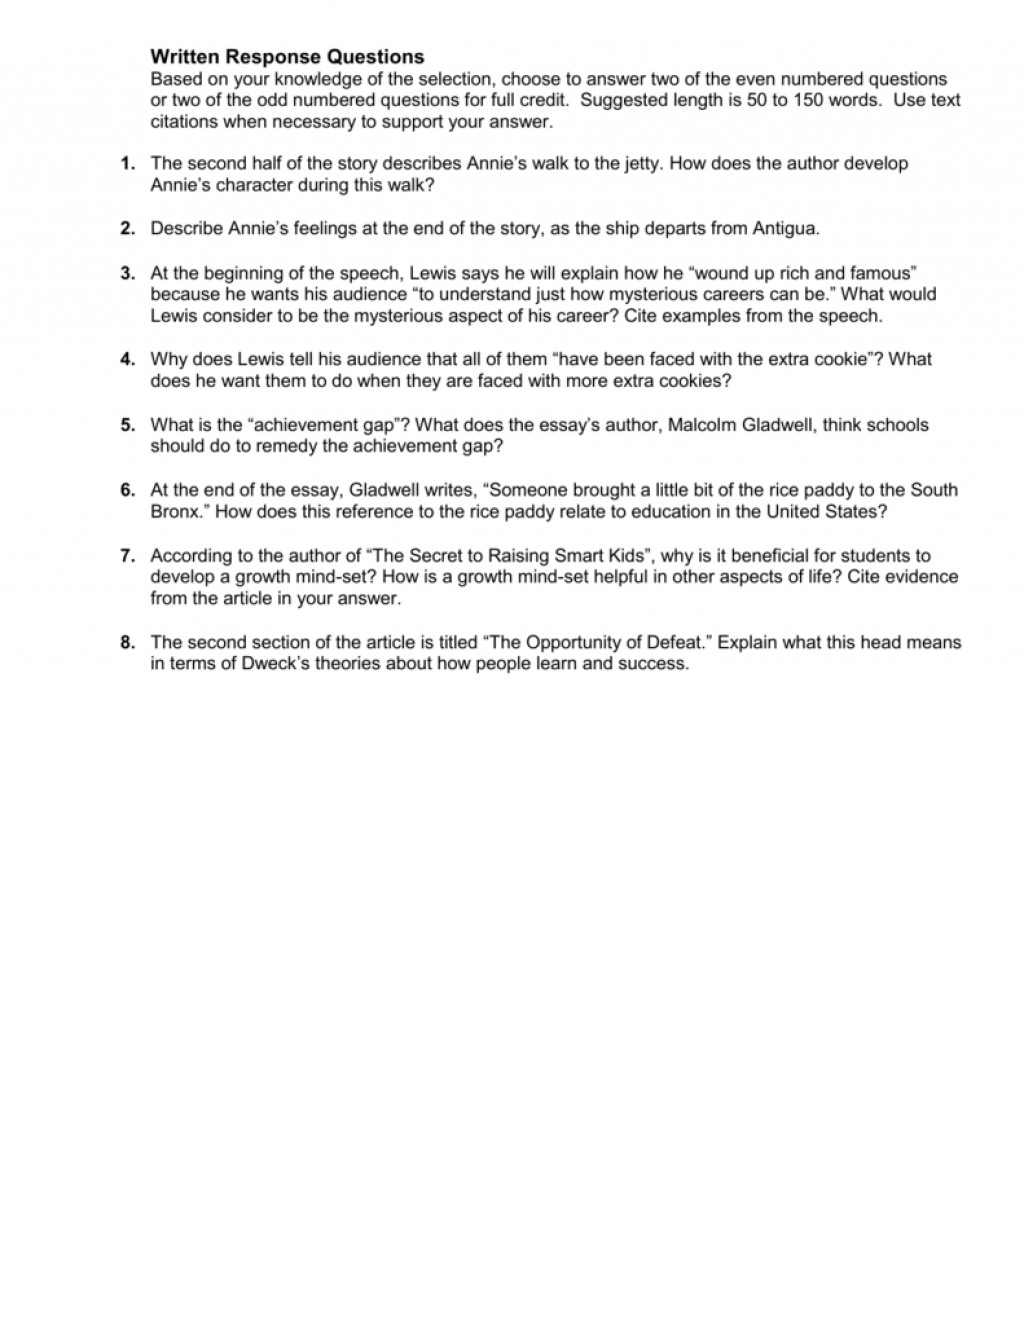 015 Success Definition Essay 007207601 1 Stirring Thesis Academic Statement For Large